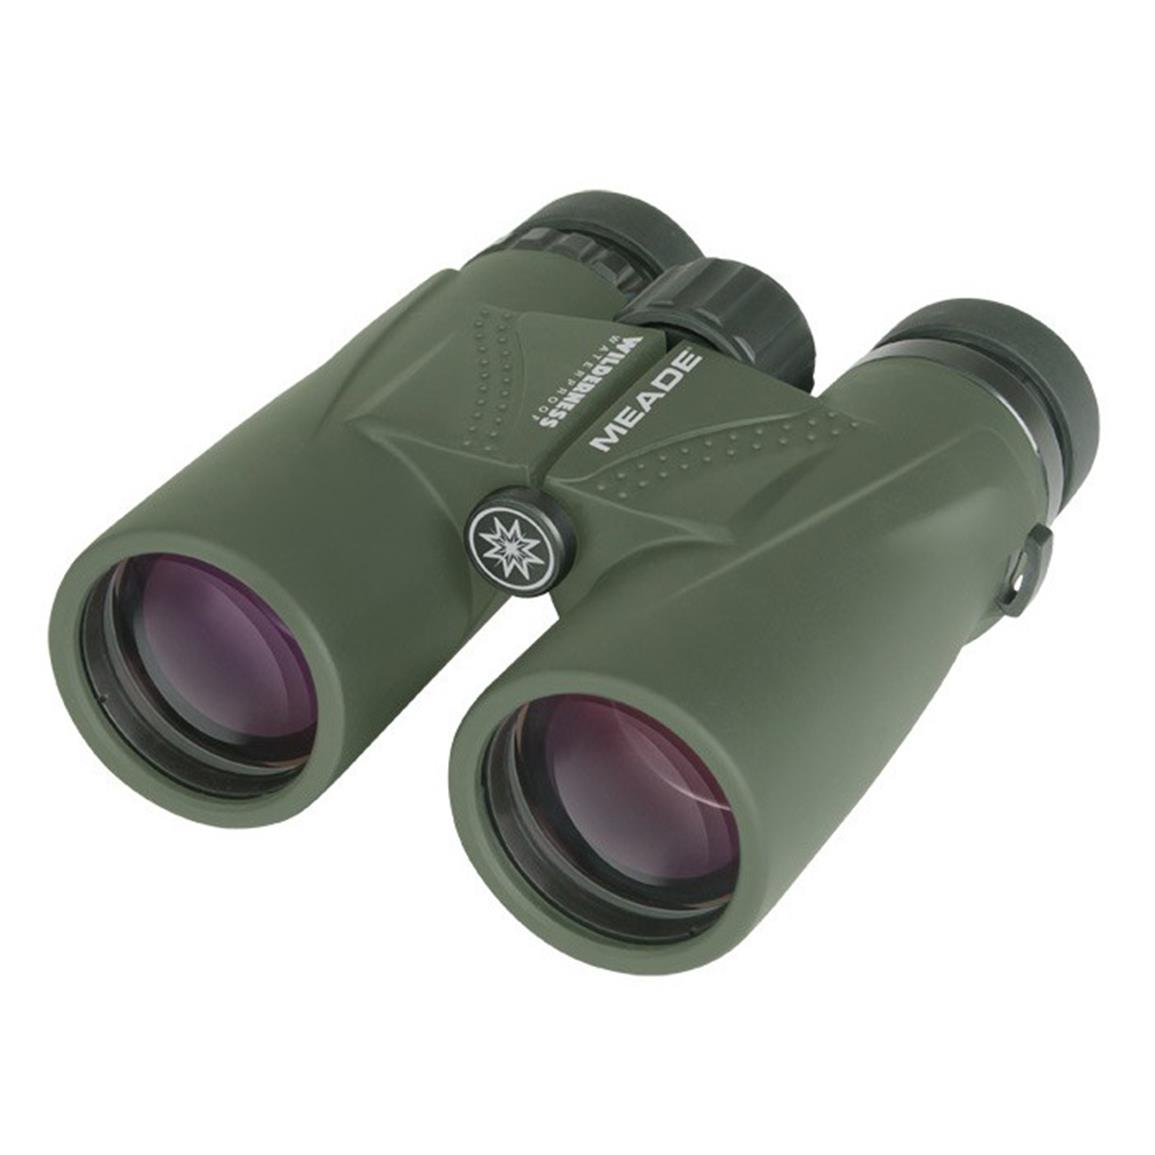 Meade 8x42mm Wilderness Binoculars